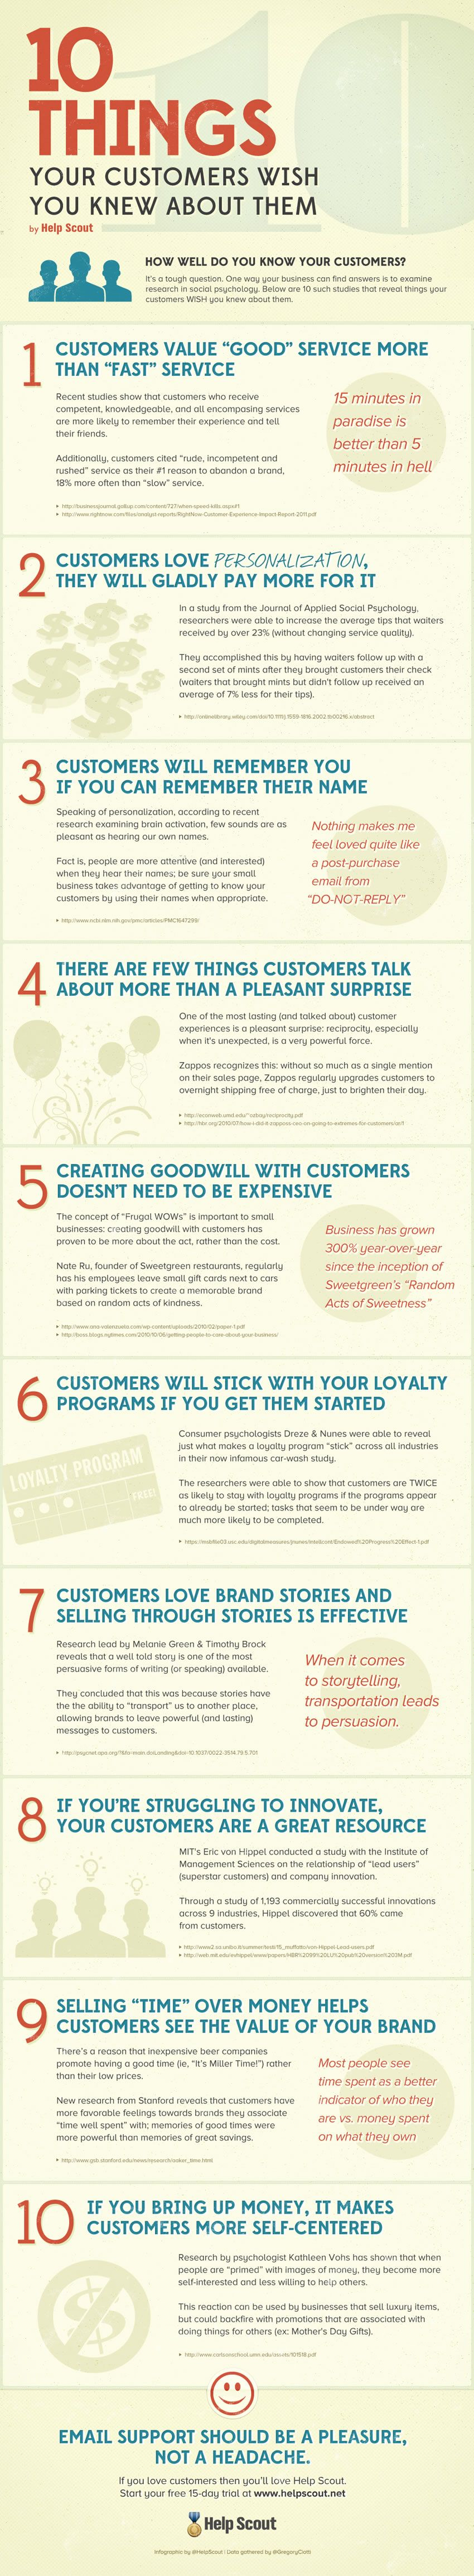 10 Things Your Customers Wish You Knew About Them Infographic Know Your Customer Business Marketing Infographic